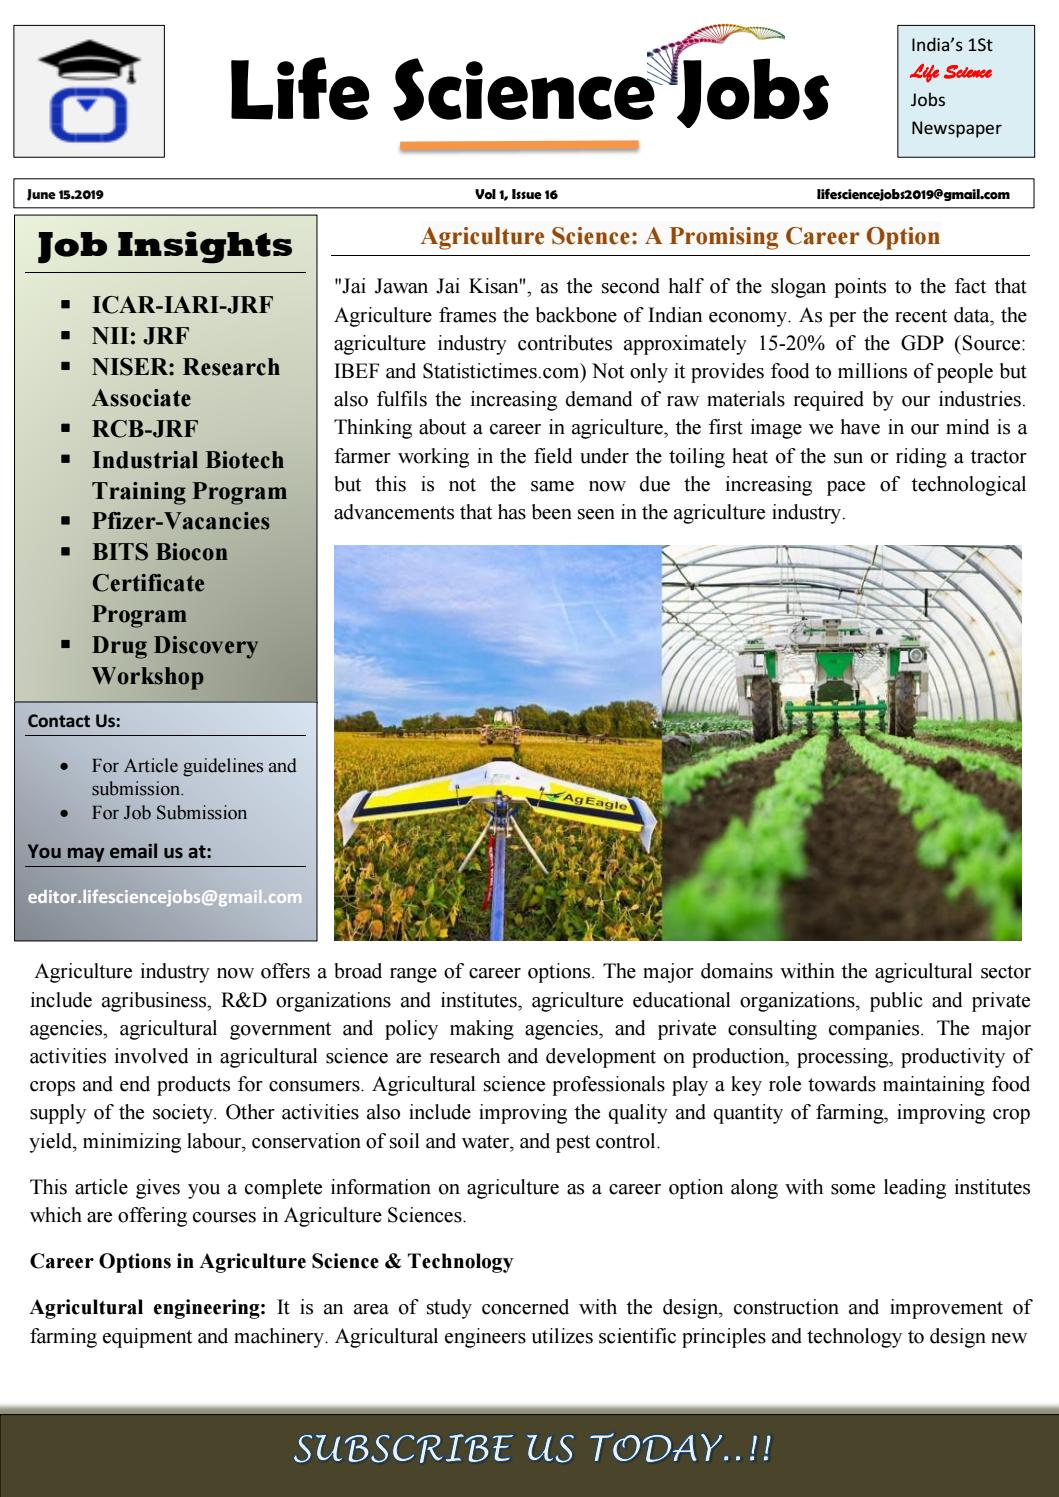 Life Science Jobs Volume 1, Issue 16, June 15 2019 by